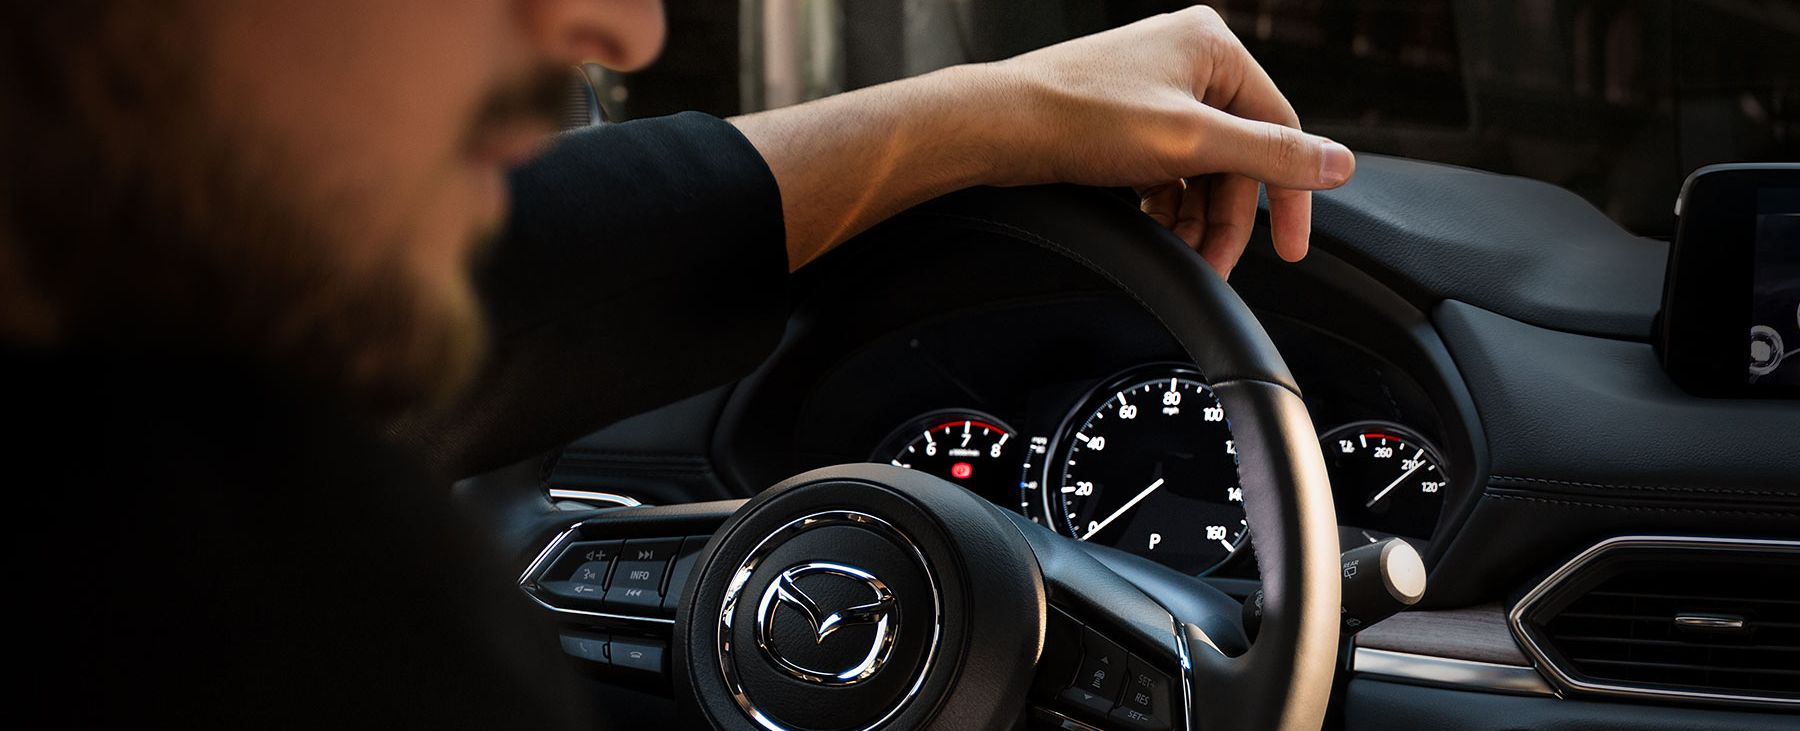 Modern Detailing in the 2019 Mazda CX-5